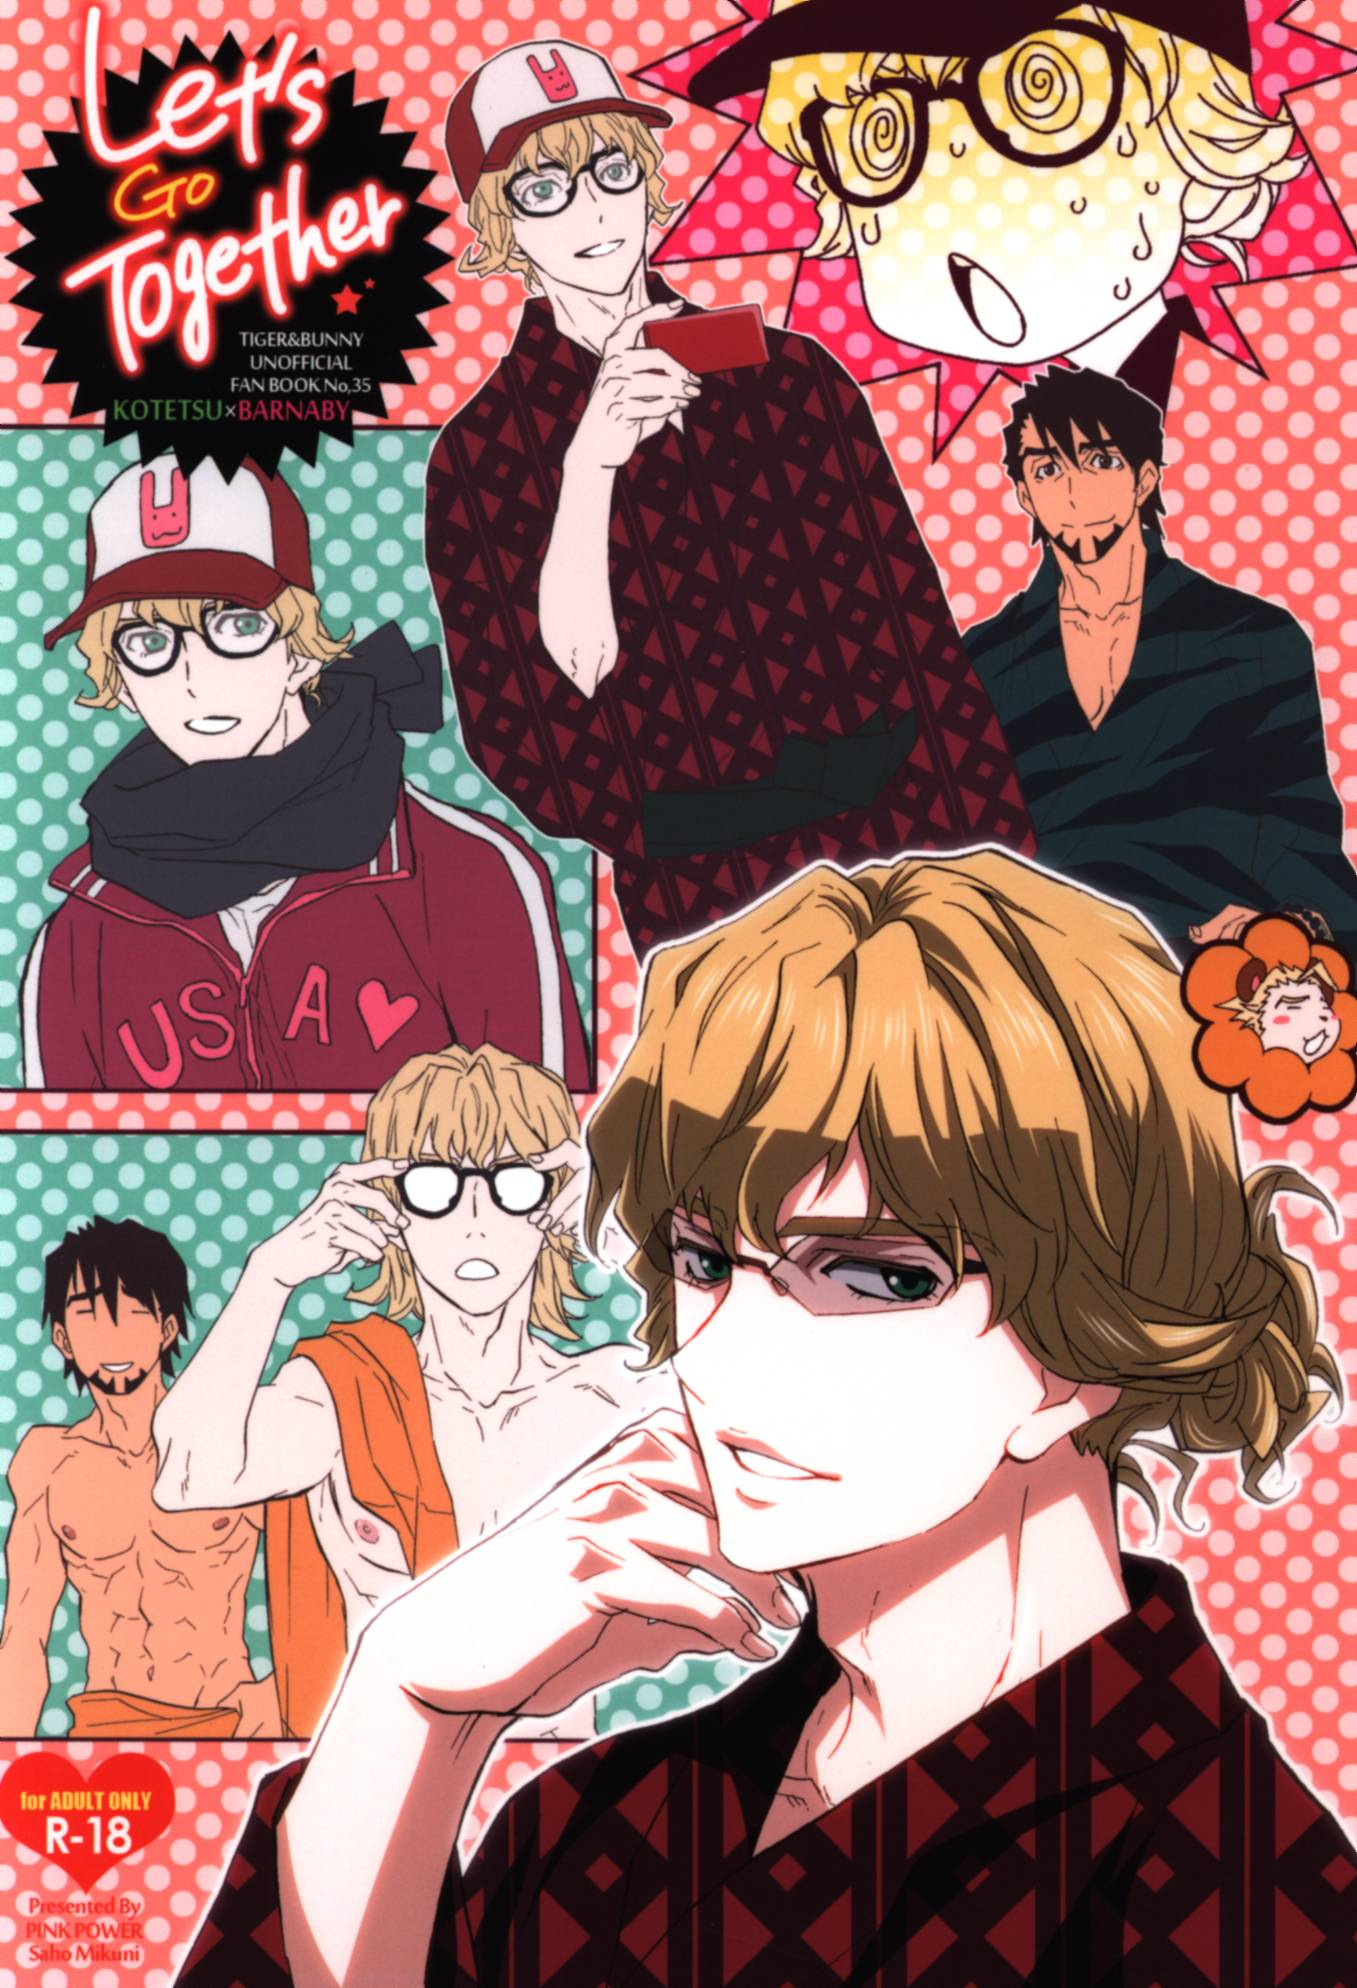 [Boys Love (Yaoi) : R18] Doujinshi - TIGER & BUNNY / Kotetsu x Barnaby (Let's Go Together) / PINK POWER